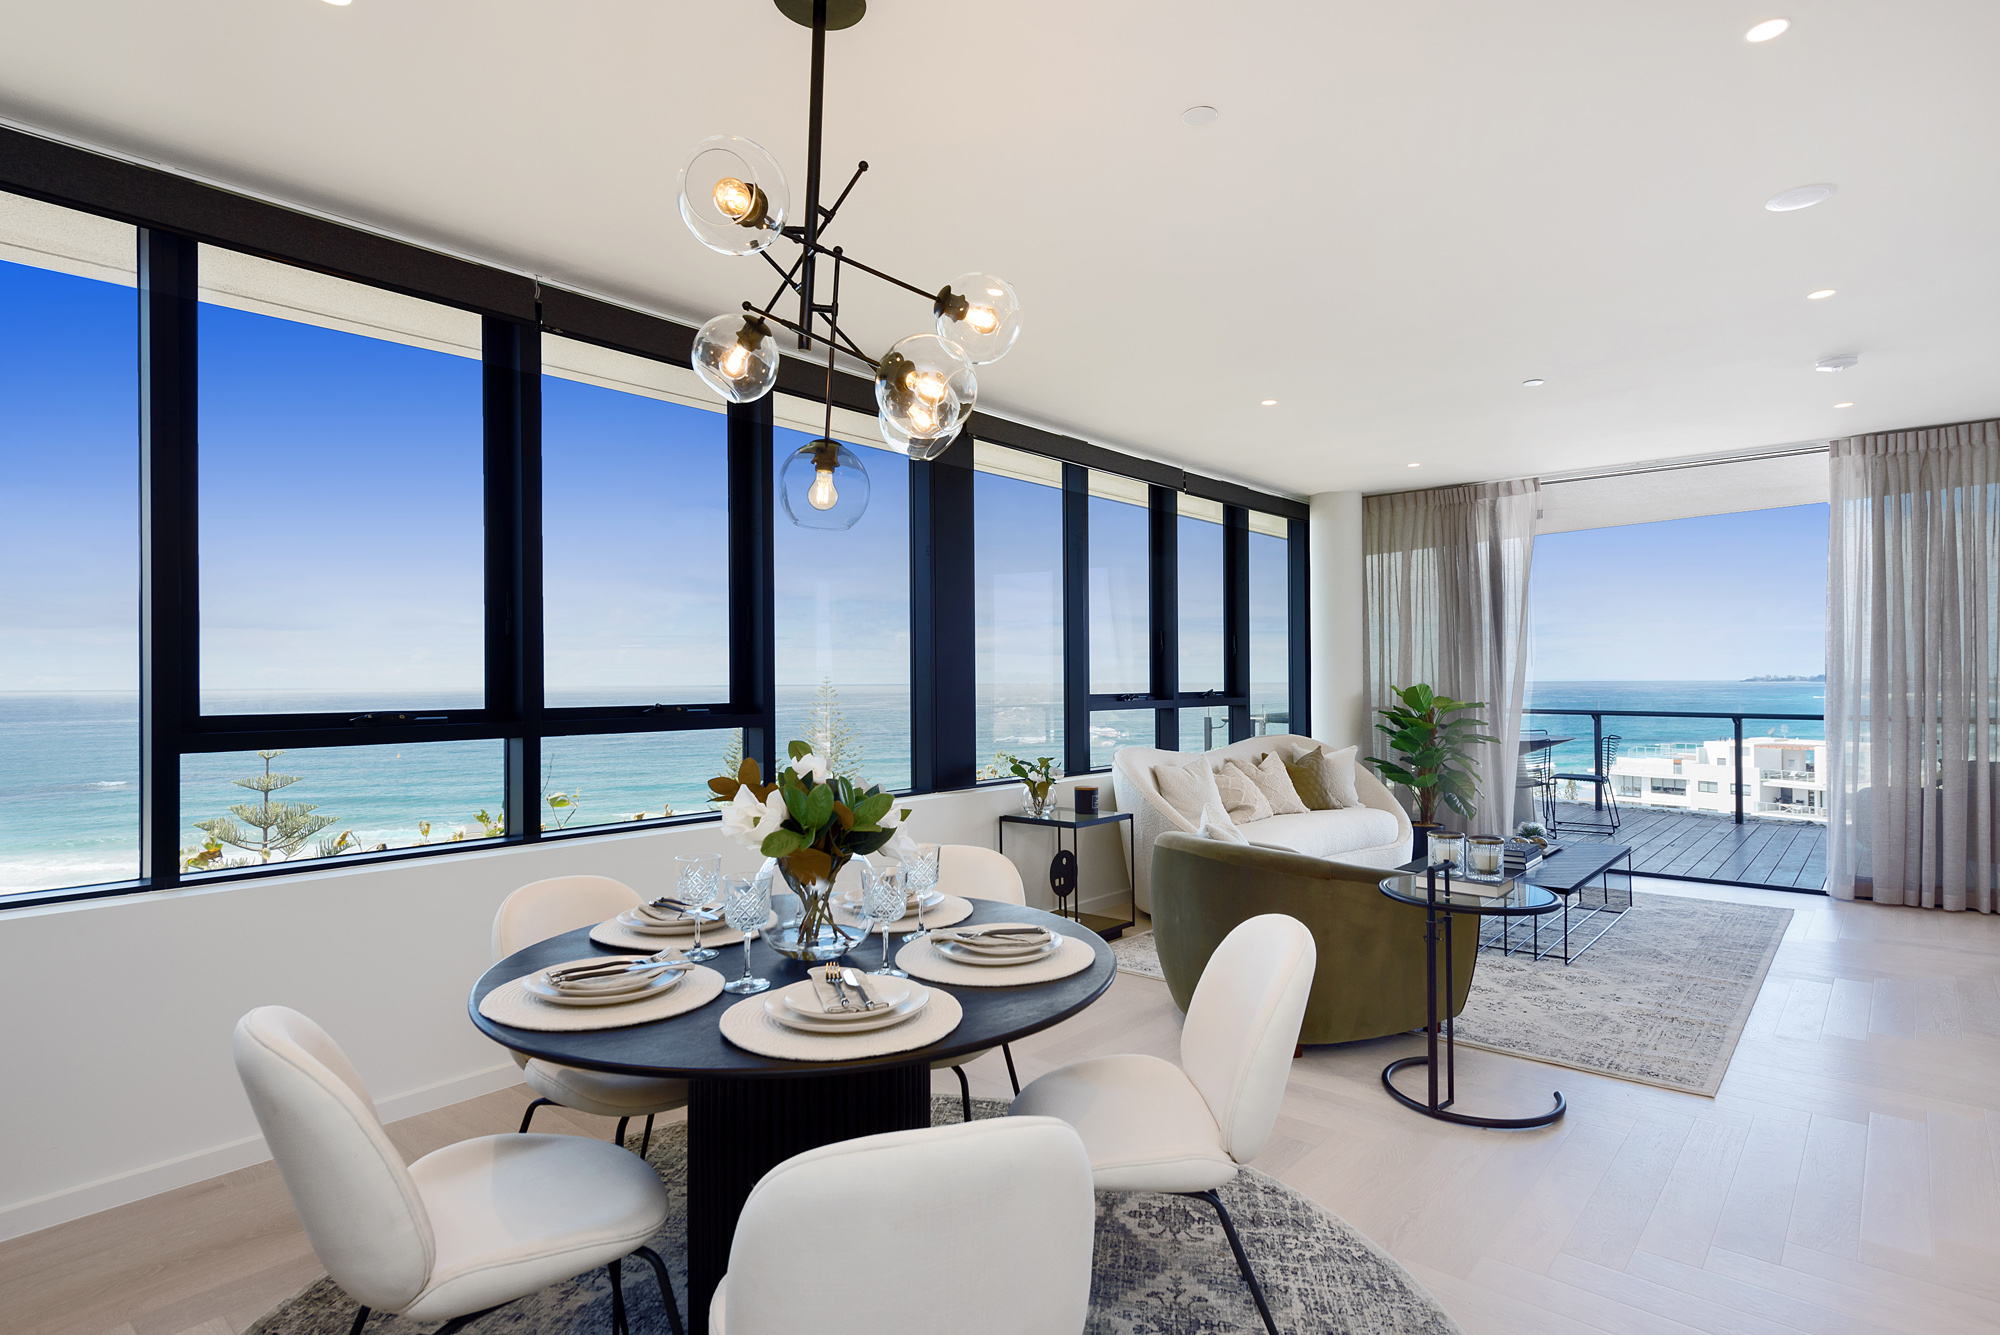 Open-plan living with amazing ocean views